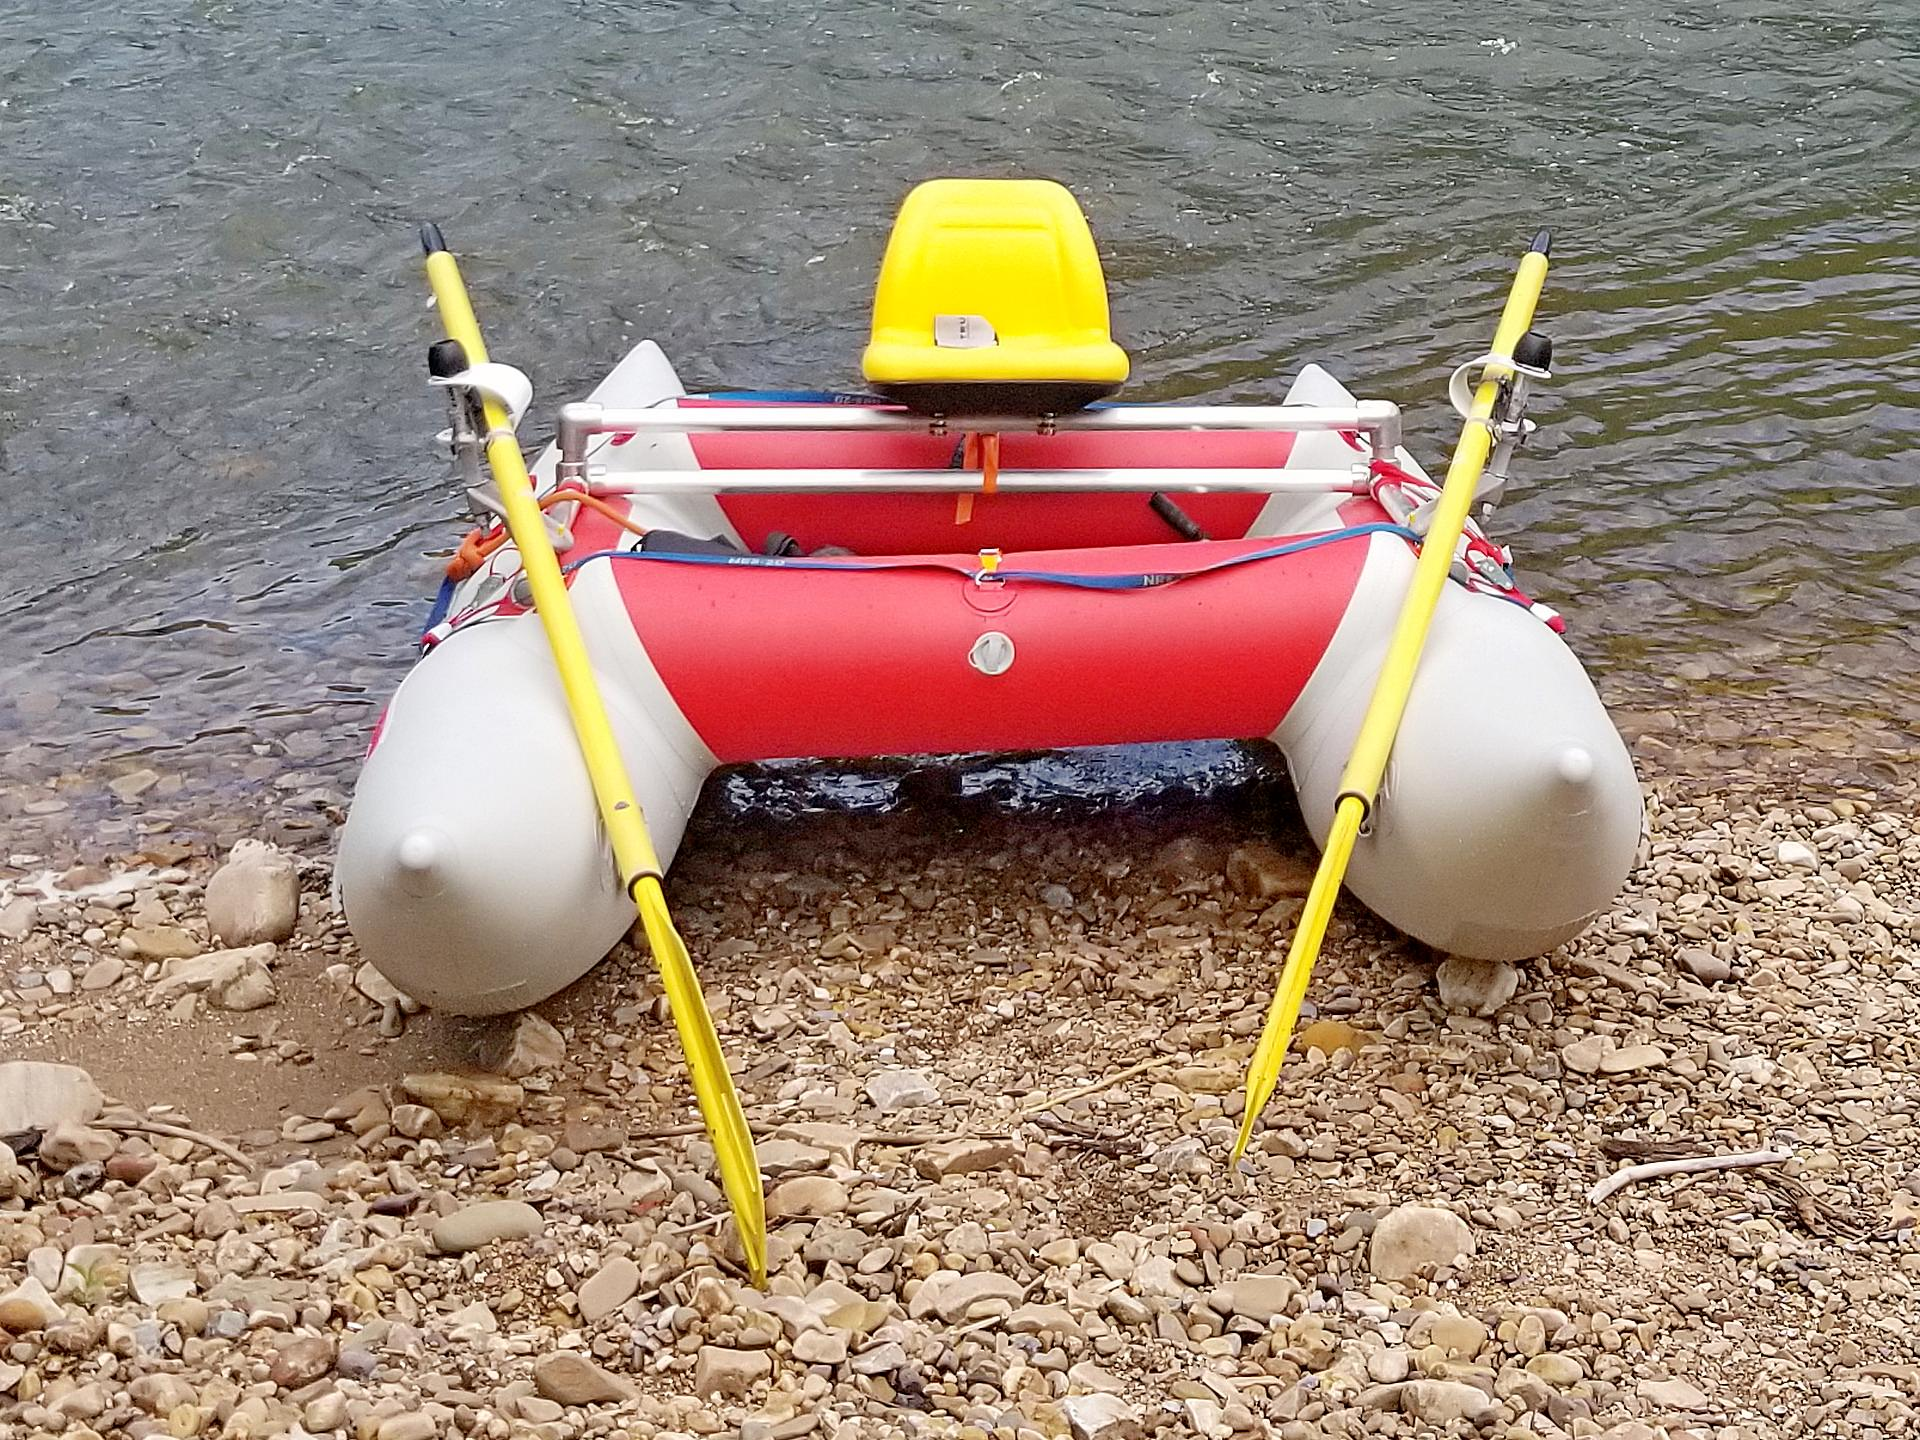 Saturn Inflatable Cataraft CR350